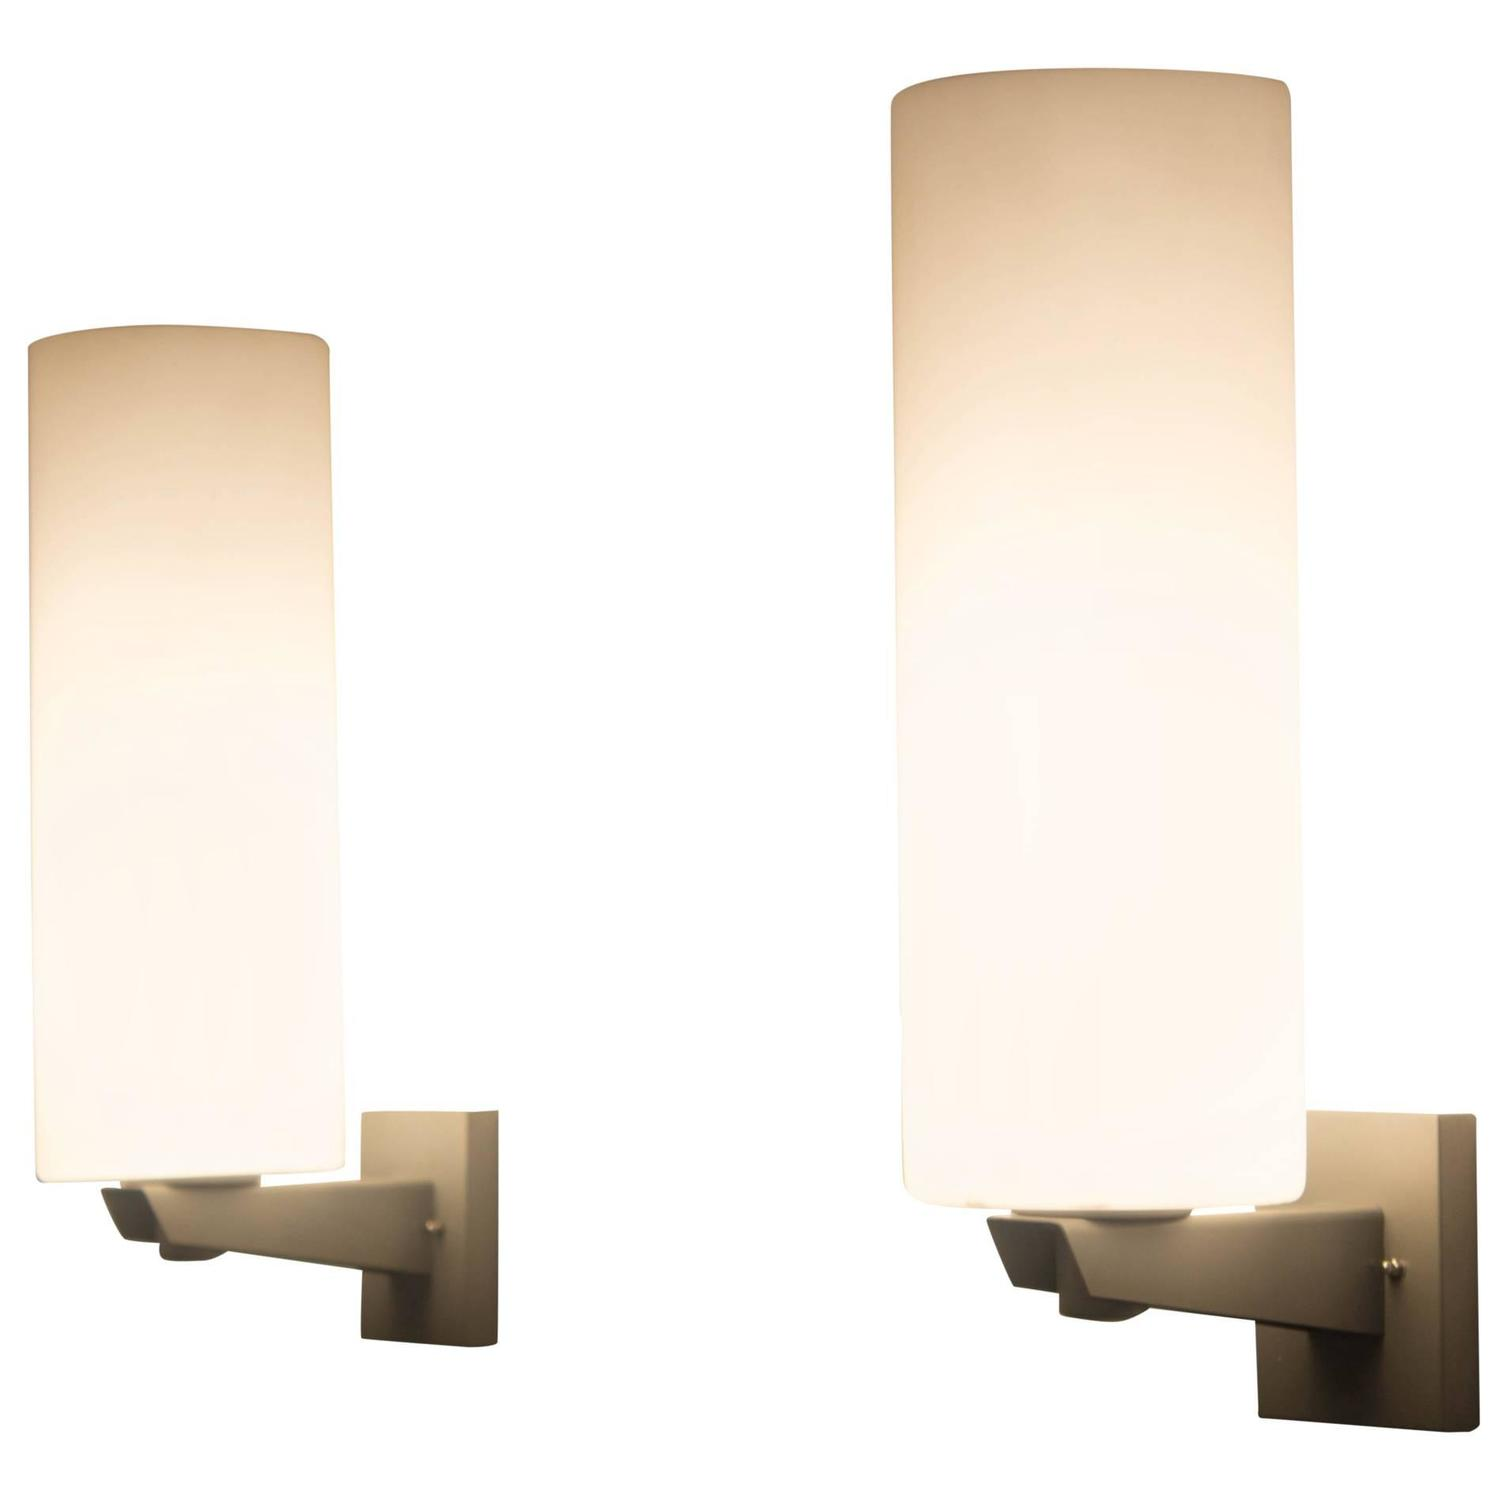 Wall Sconces Mid Century Modern : Mid-Century Modern Sconces by RAAK Amsterdam For Sale at 1stdibs